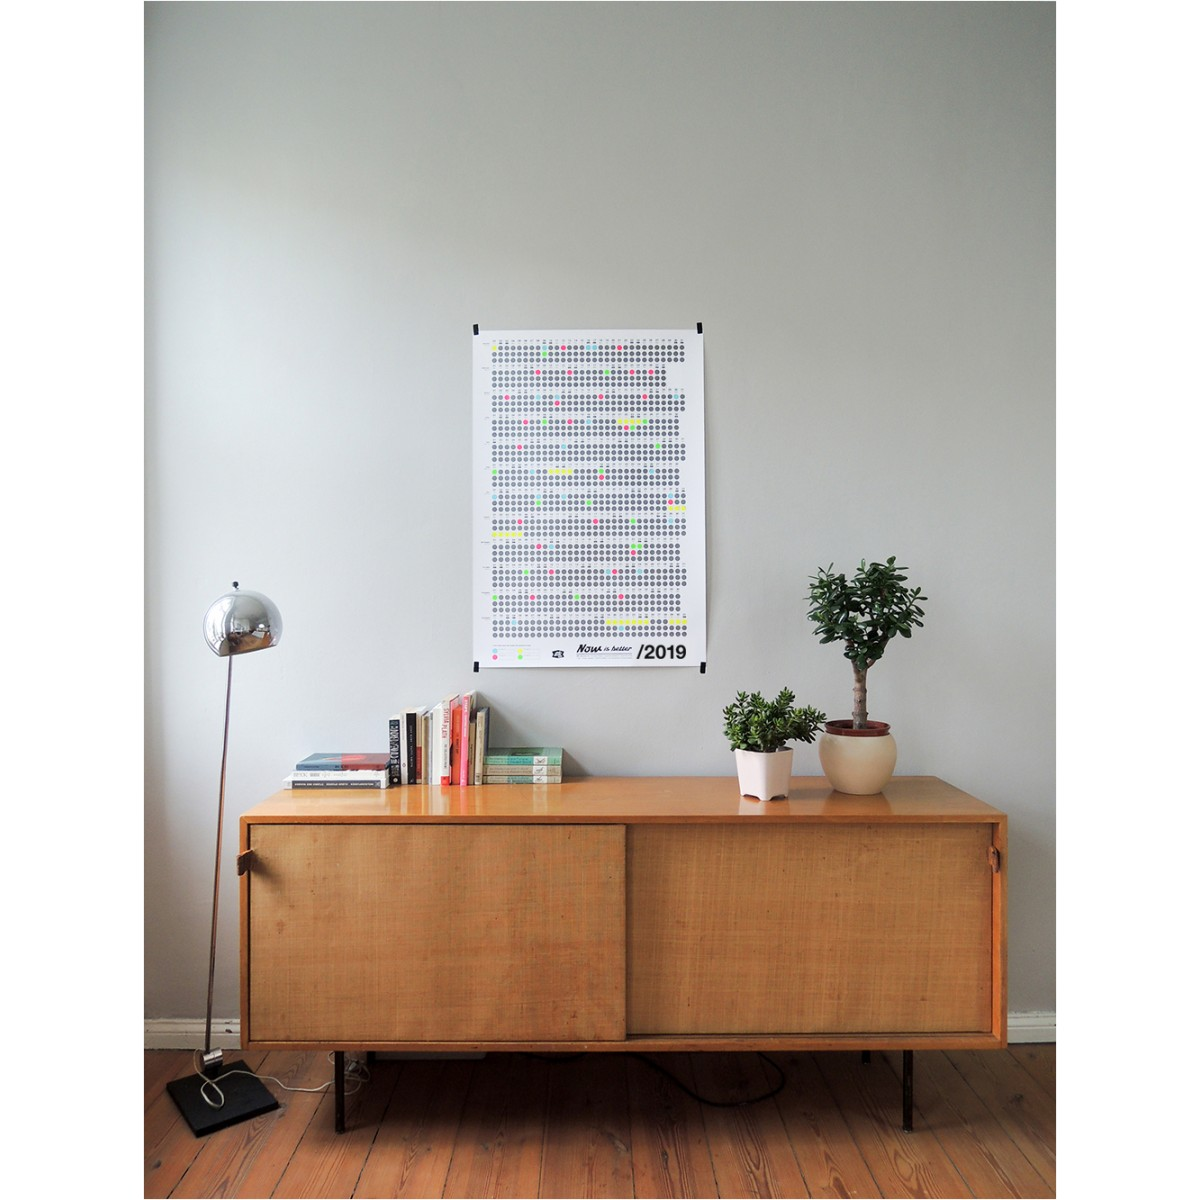 Bob And Uncle Design – Wandkalender – Now Is Better 2019 – Weiß – 680 x 1000 mm